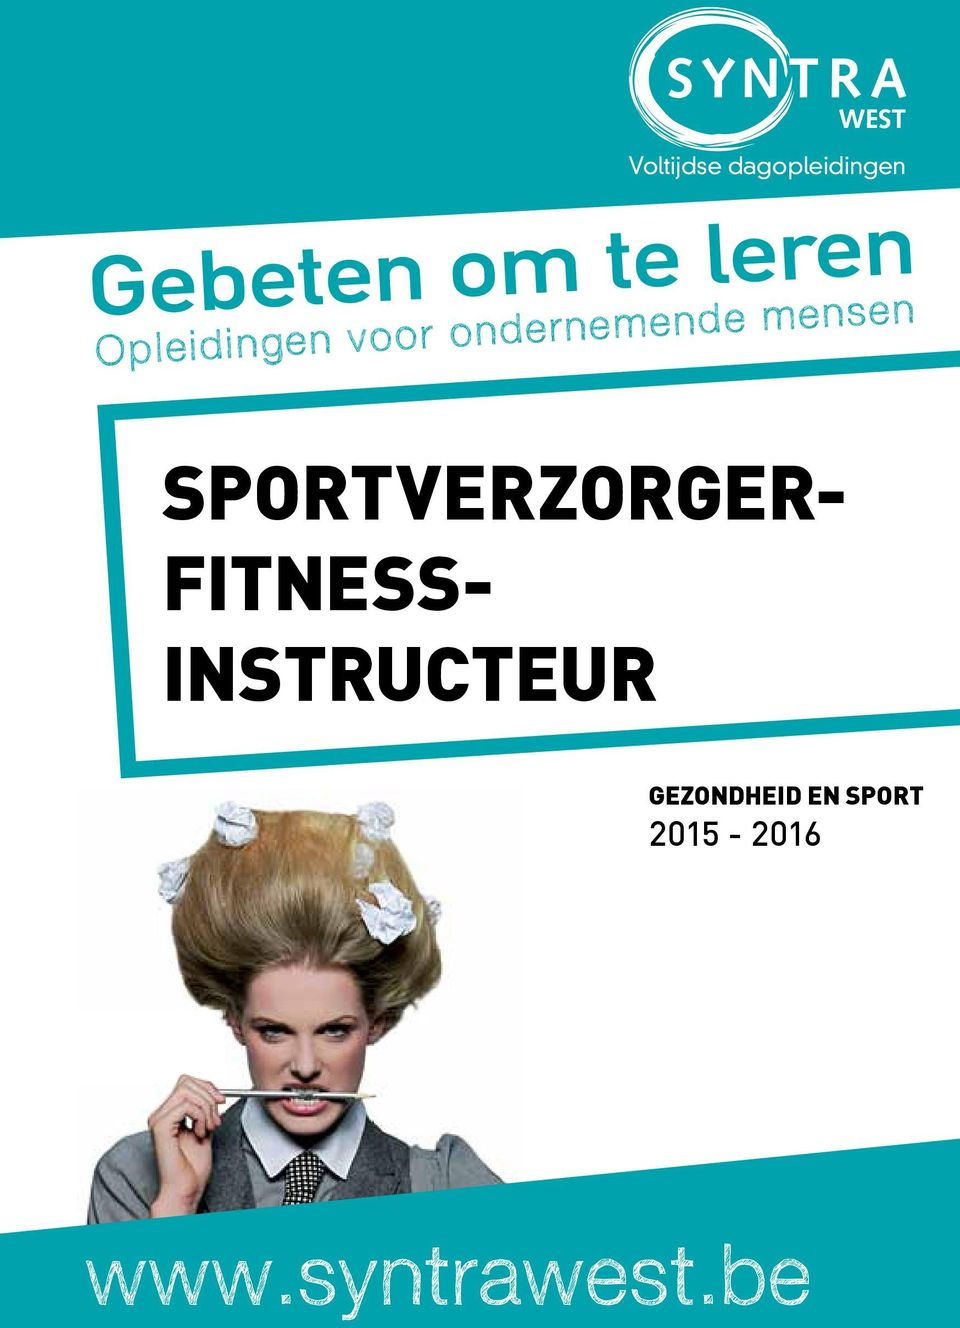 SPORTVERZORGER- FITNESS- INSTRUCTEUR